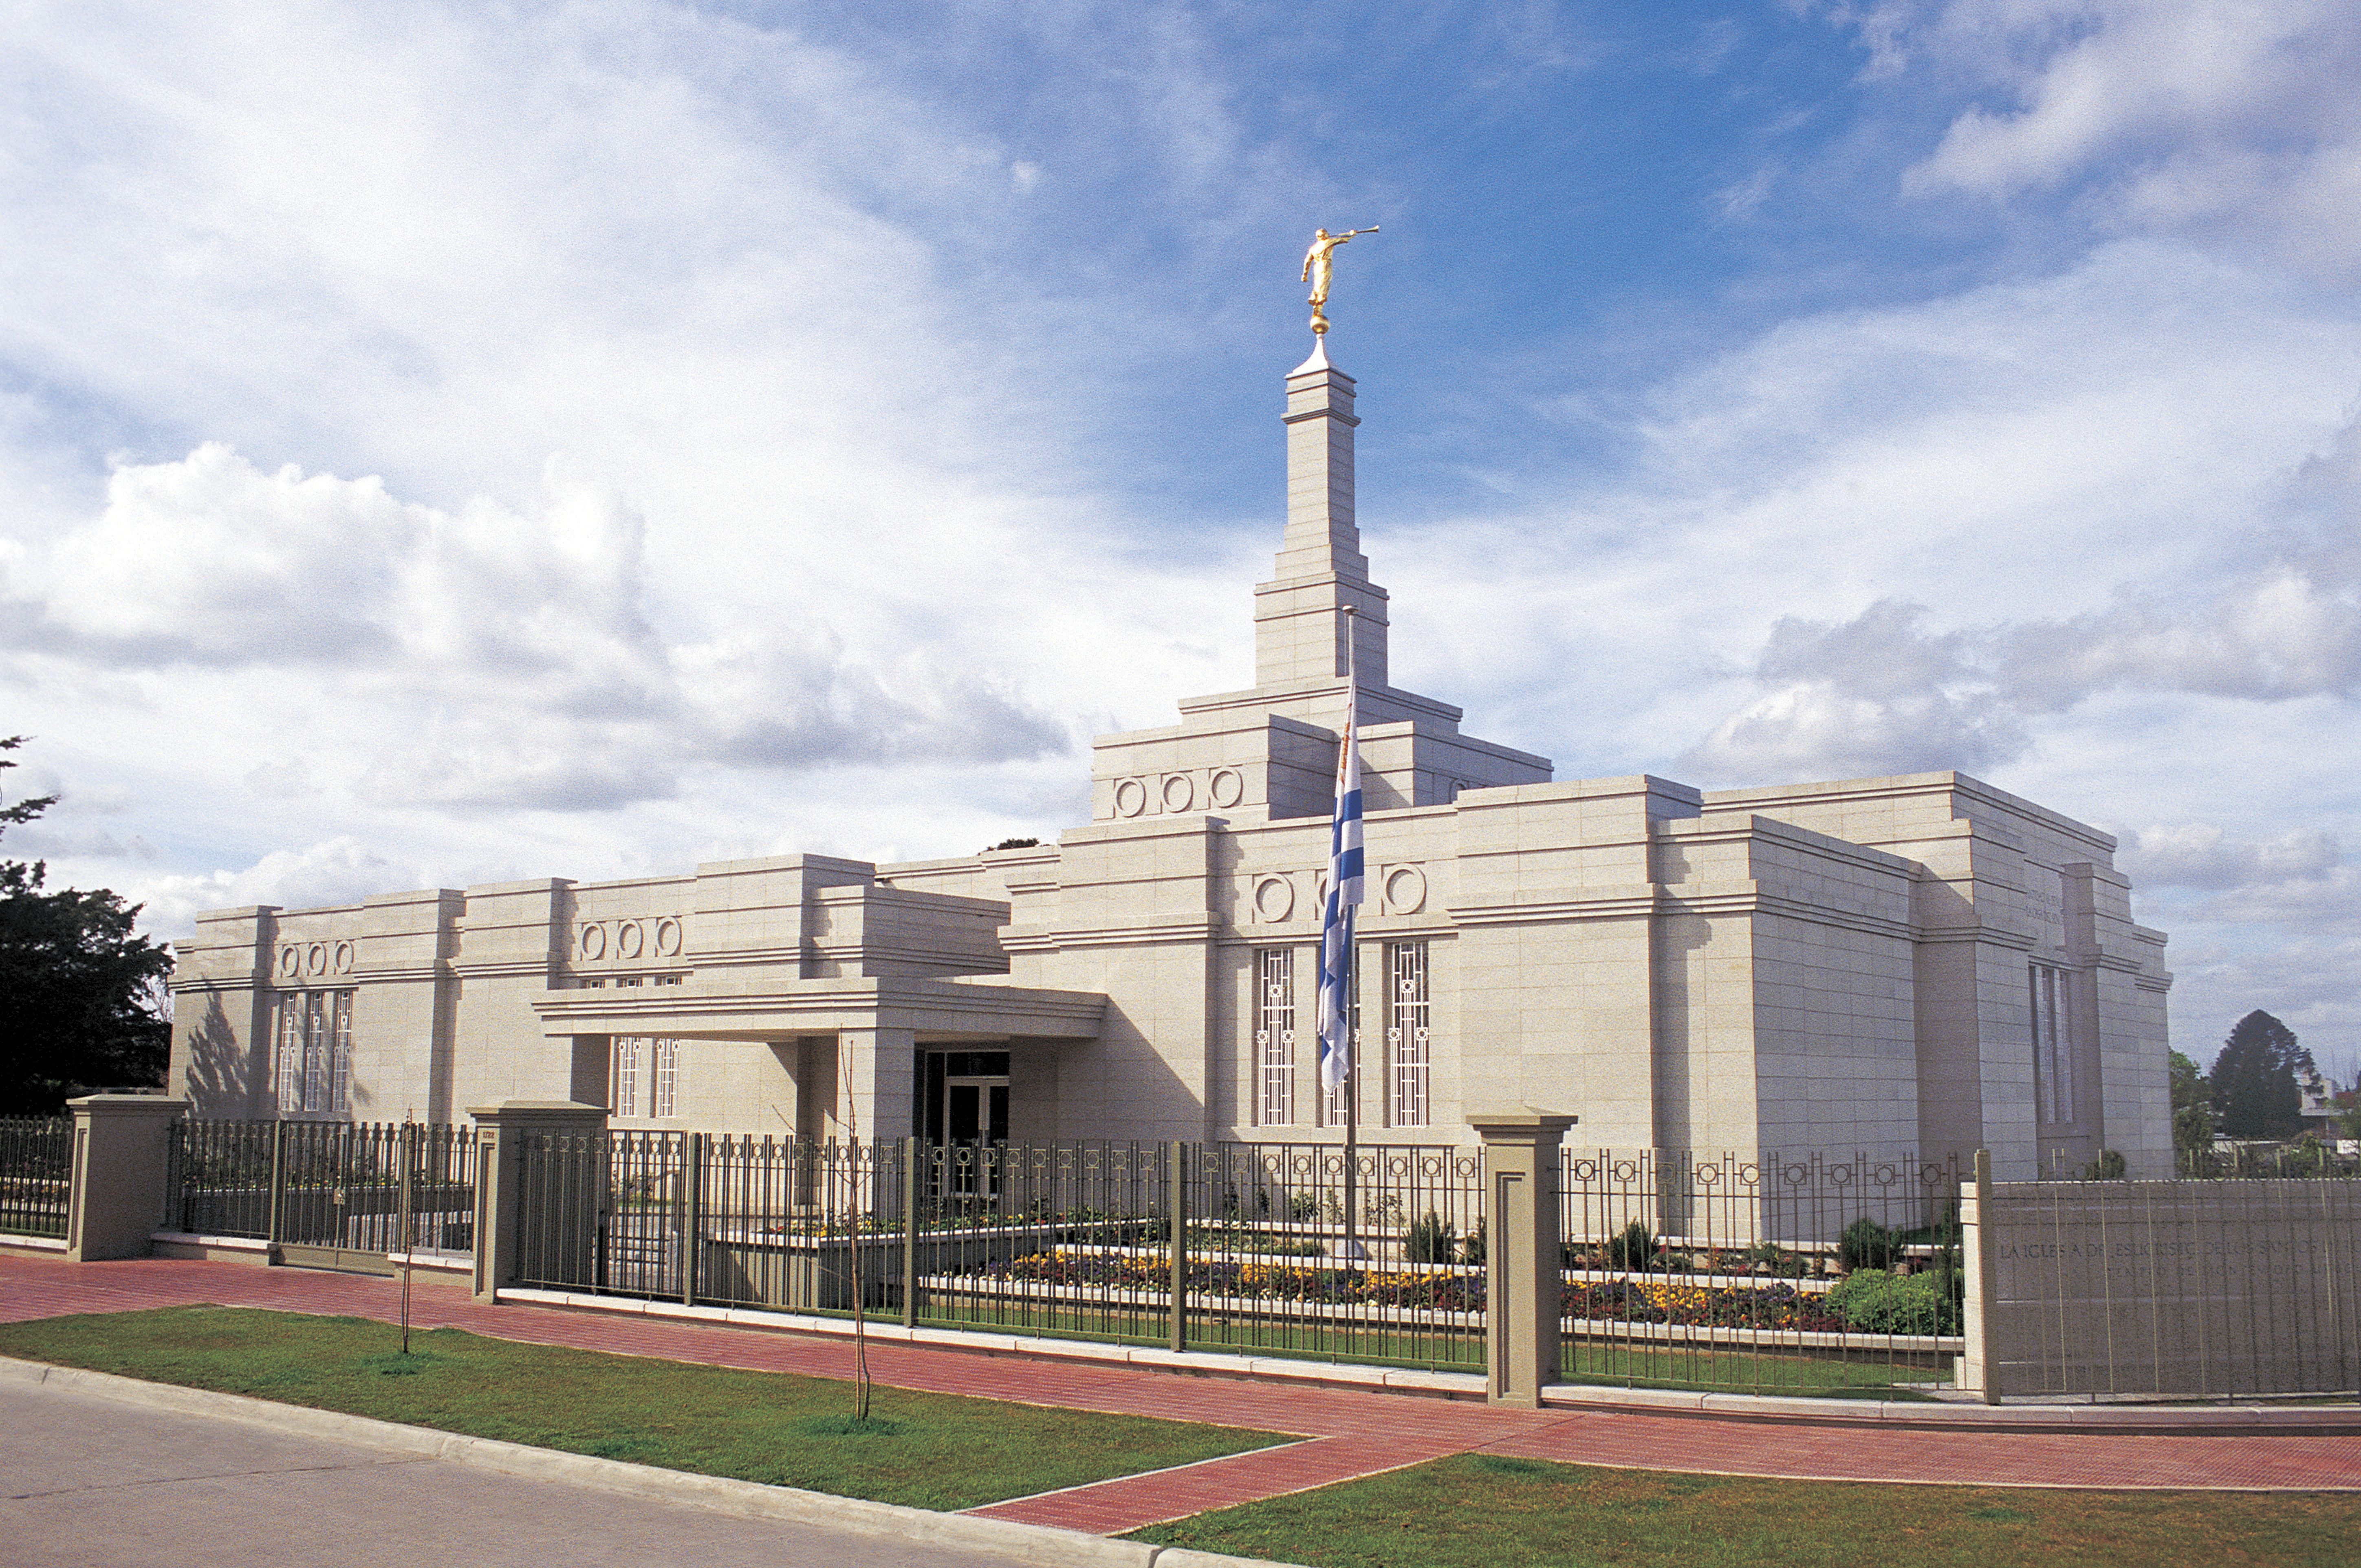 The Montevideo Uruguay Temple, including the entrance and scenery.